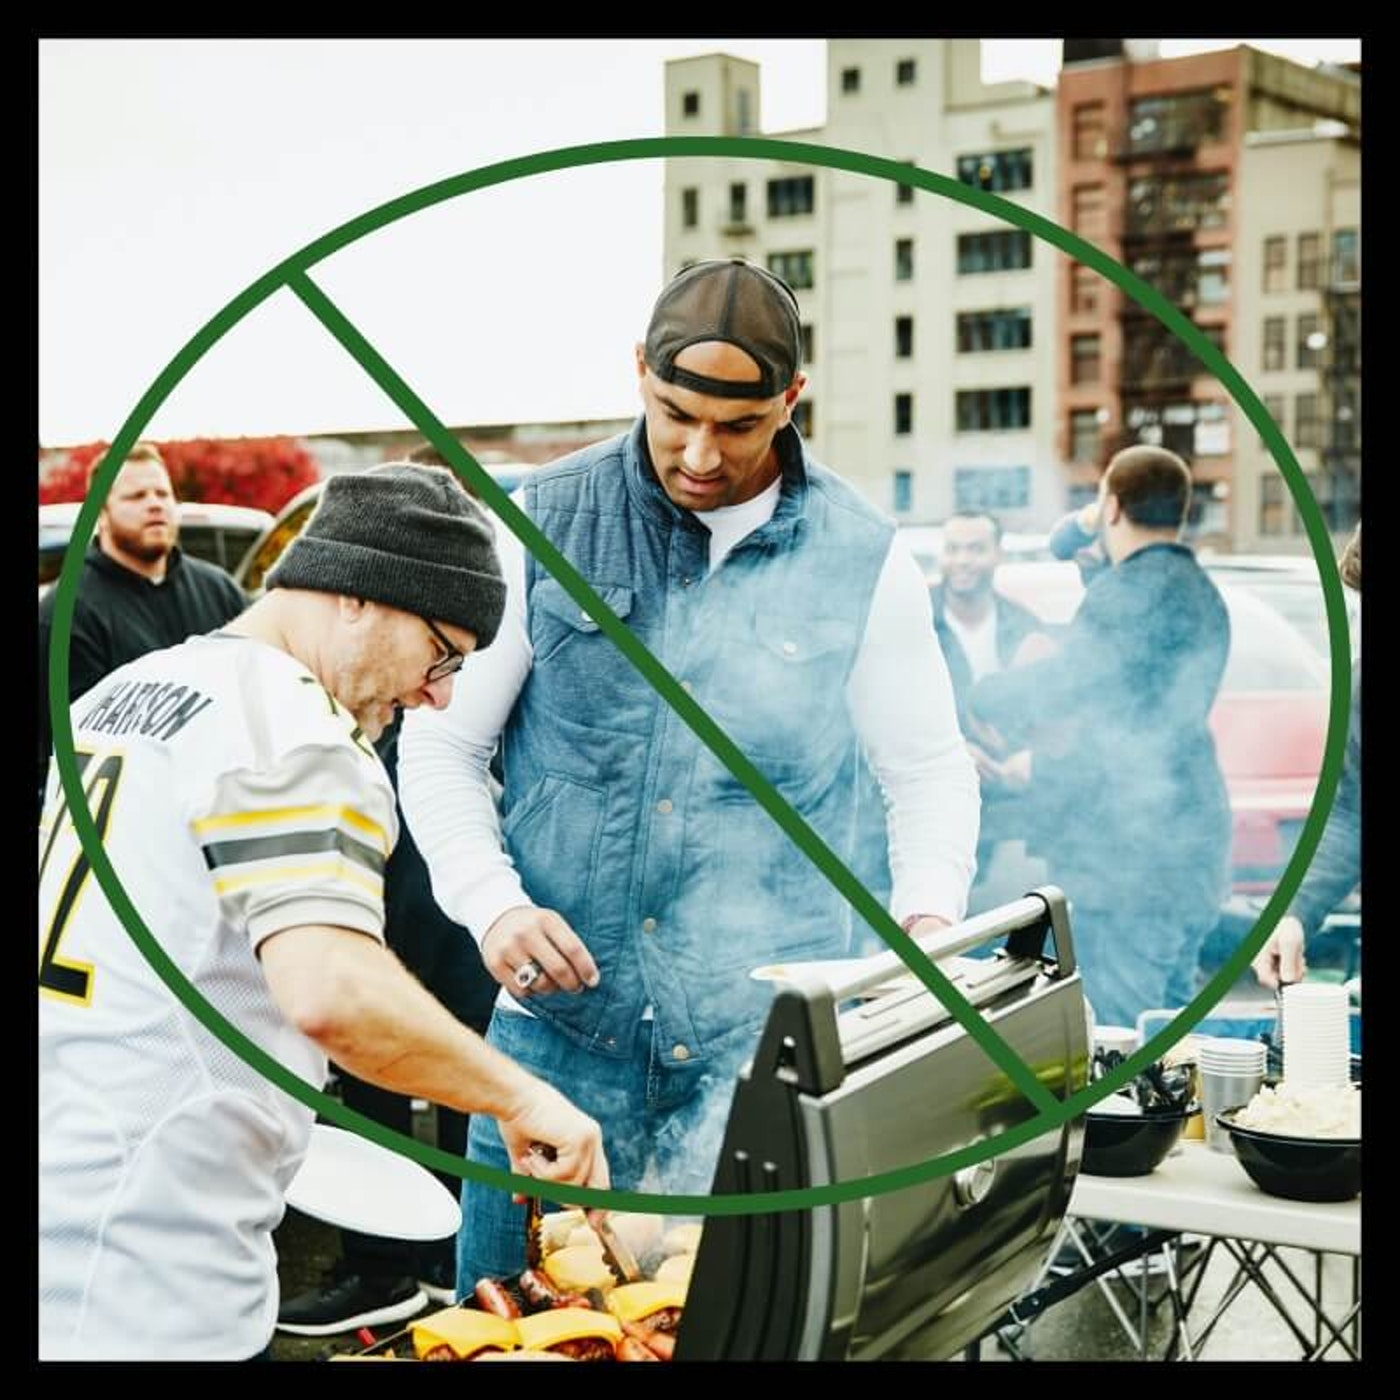 Tailgate parties like this were once staples to the MSU football season. Now, they're banned as efforts increase to slow the spread of the coronavirus.